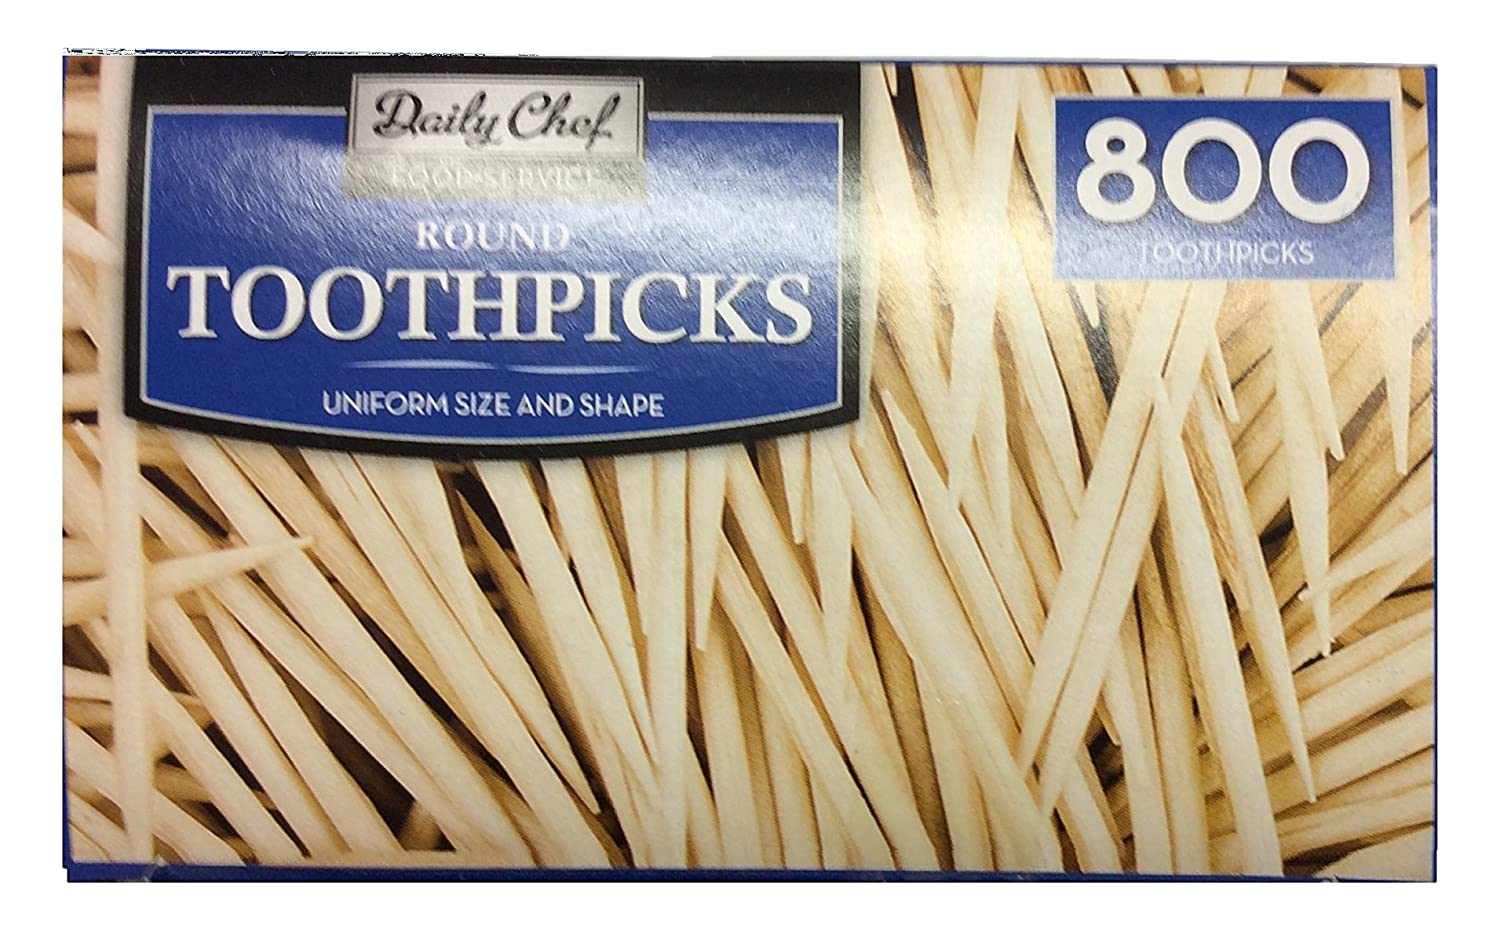 Bakers & Chefs Round Toothpicks, 4 per 800 Count CF2051